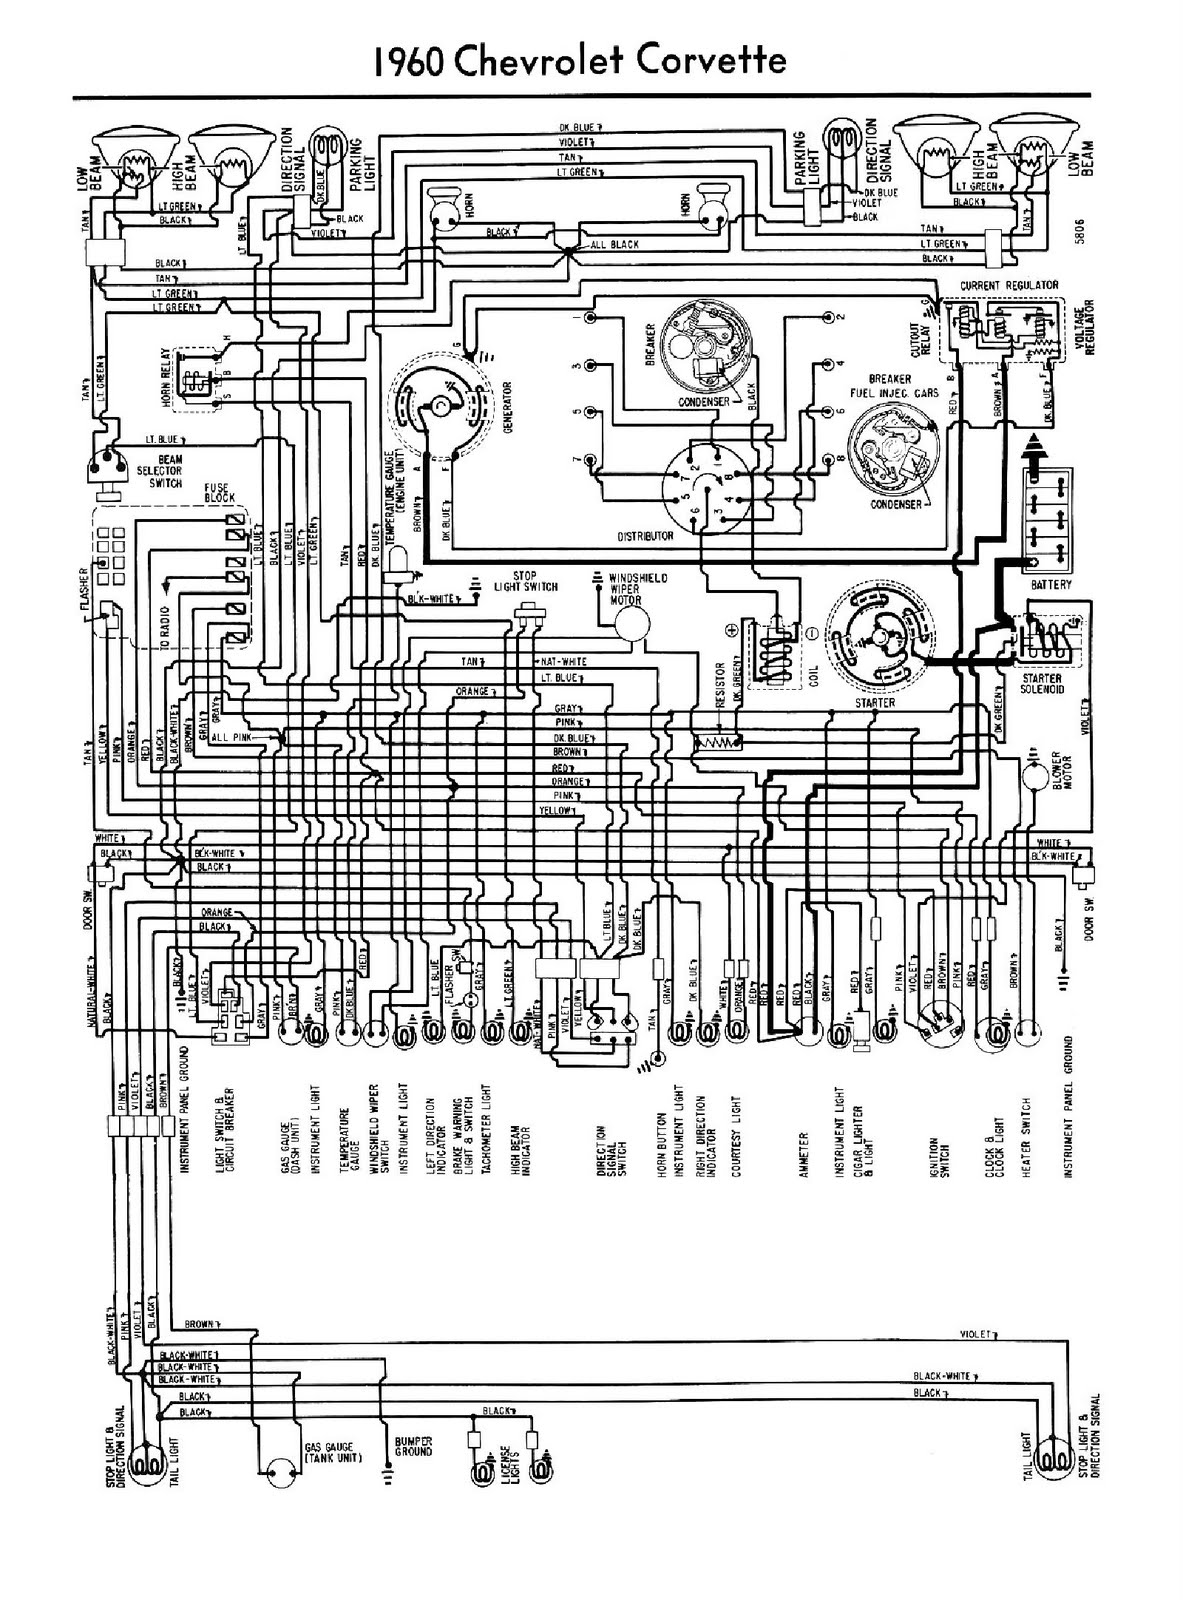 1970 Corvette Wiring Diagram from 4.bp.blogspot.com